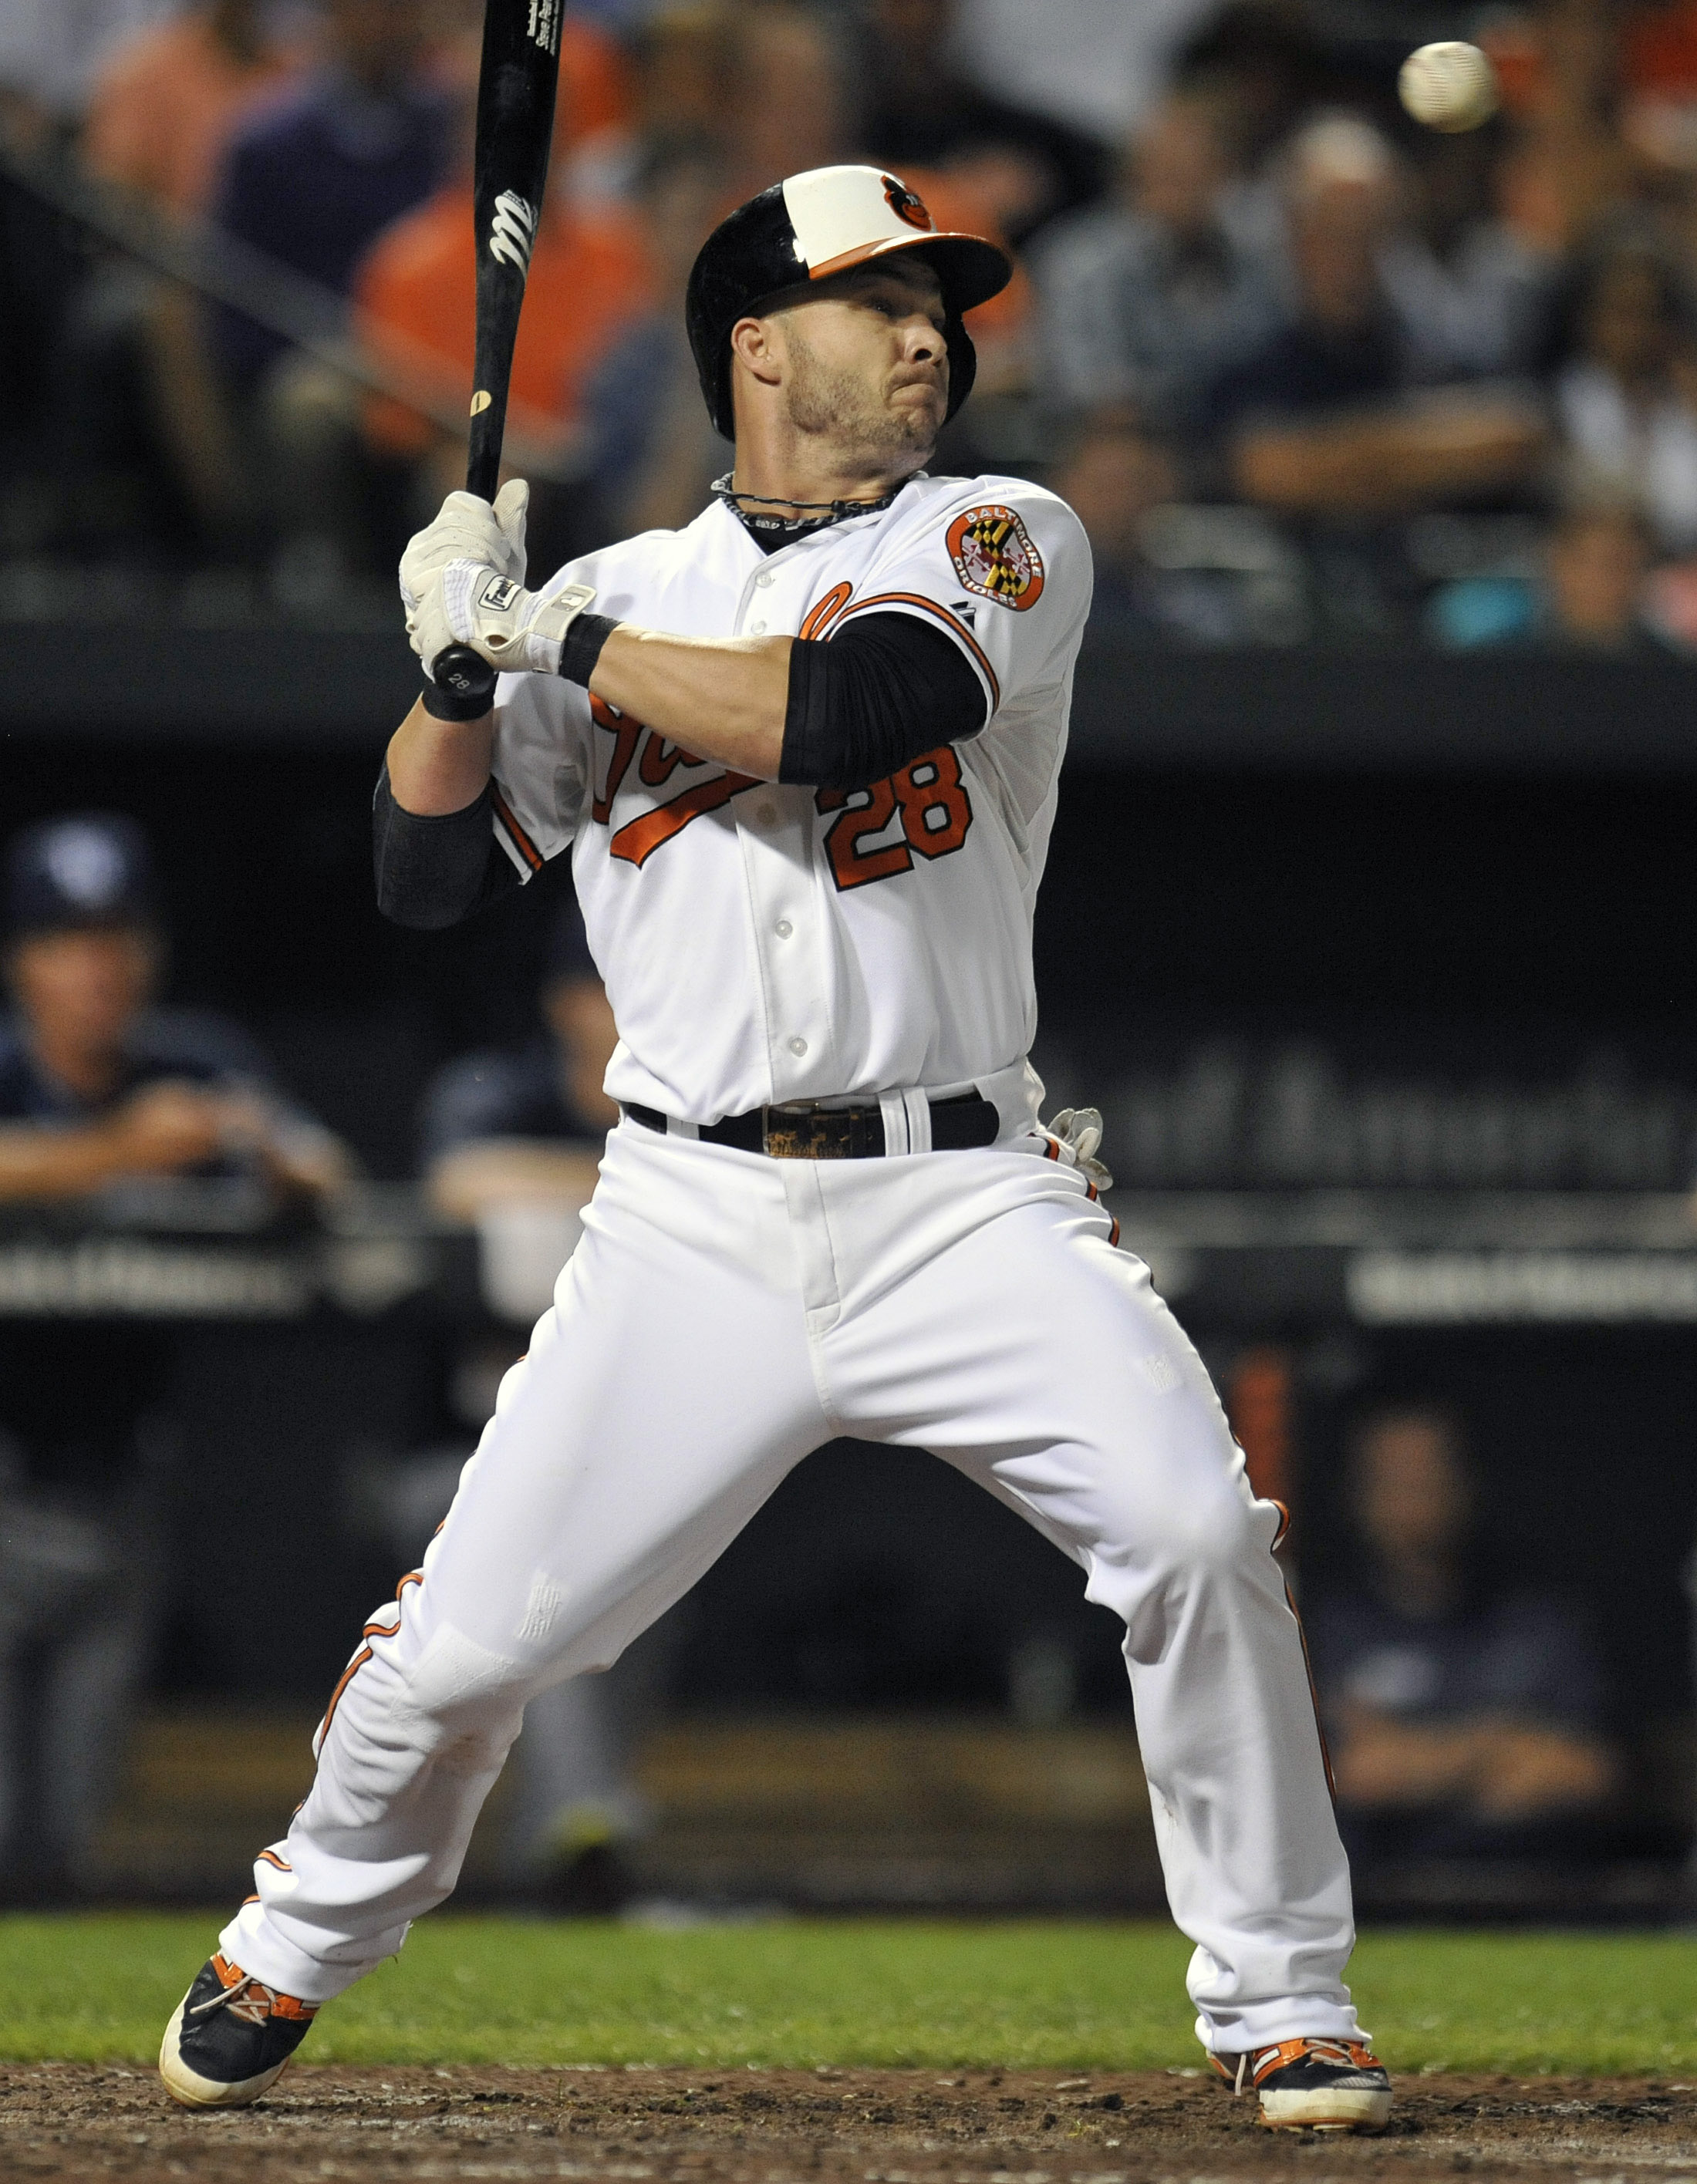 Steve Pearce, for your transgressions